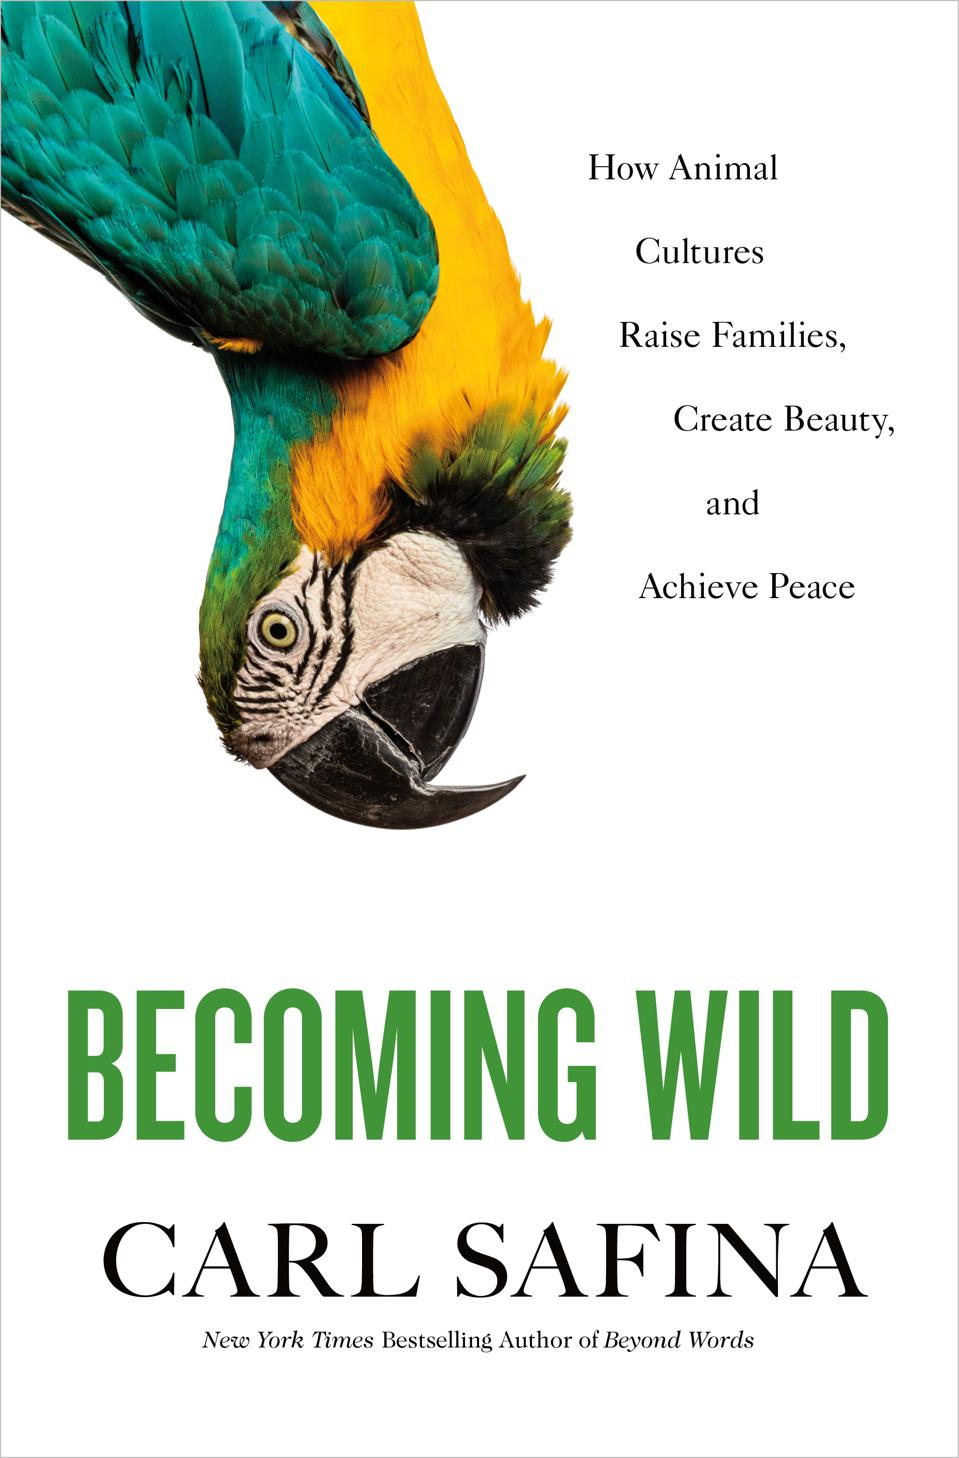 ″Becoming Wild: How Animal Cultures Raise Families, Create Beauty, and Achieve Peace″ book